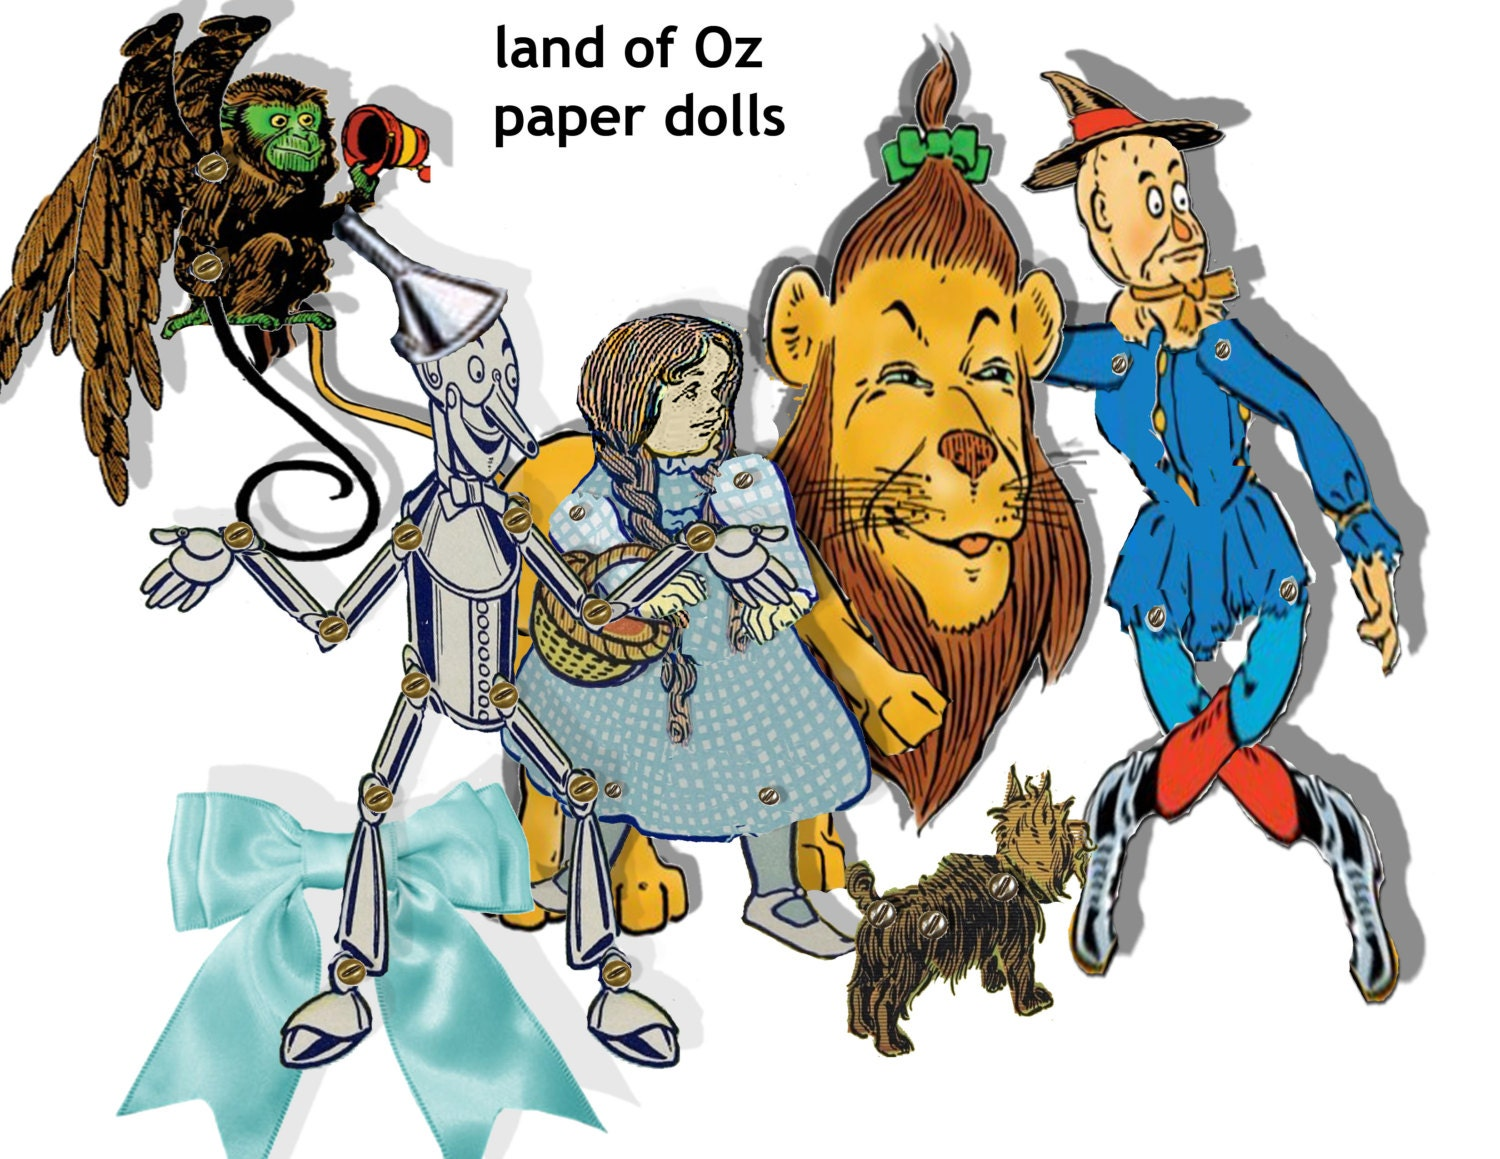 wizard of oz essay thesis The wizard of oz - movie essay 3 pages 817 words december 2014 saved essays save your essays here so you can locate them quickly.